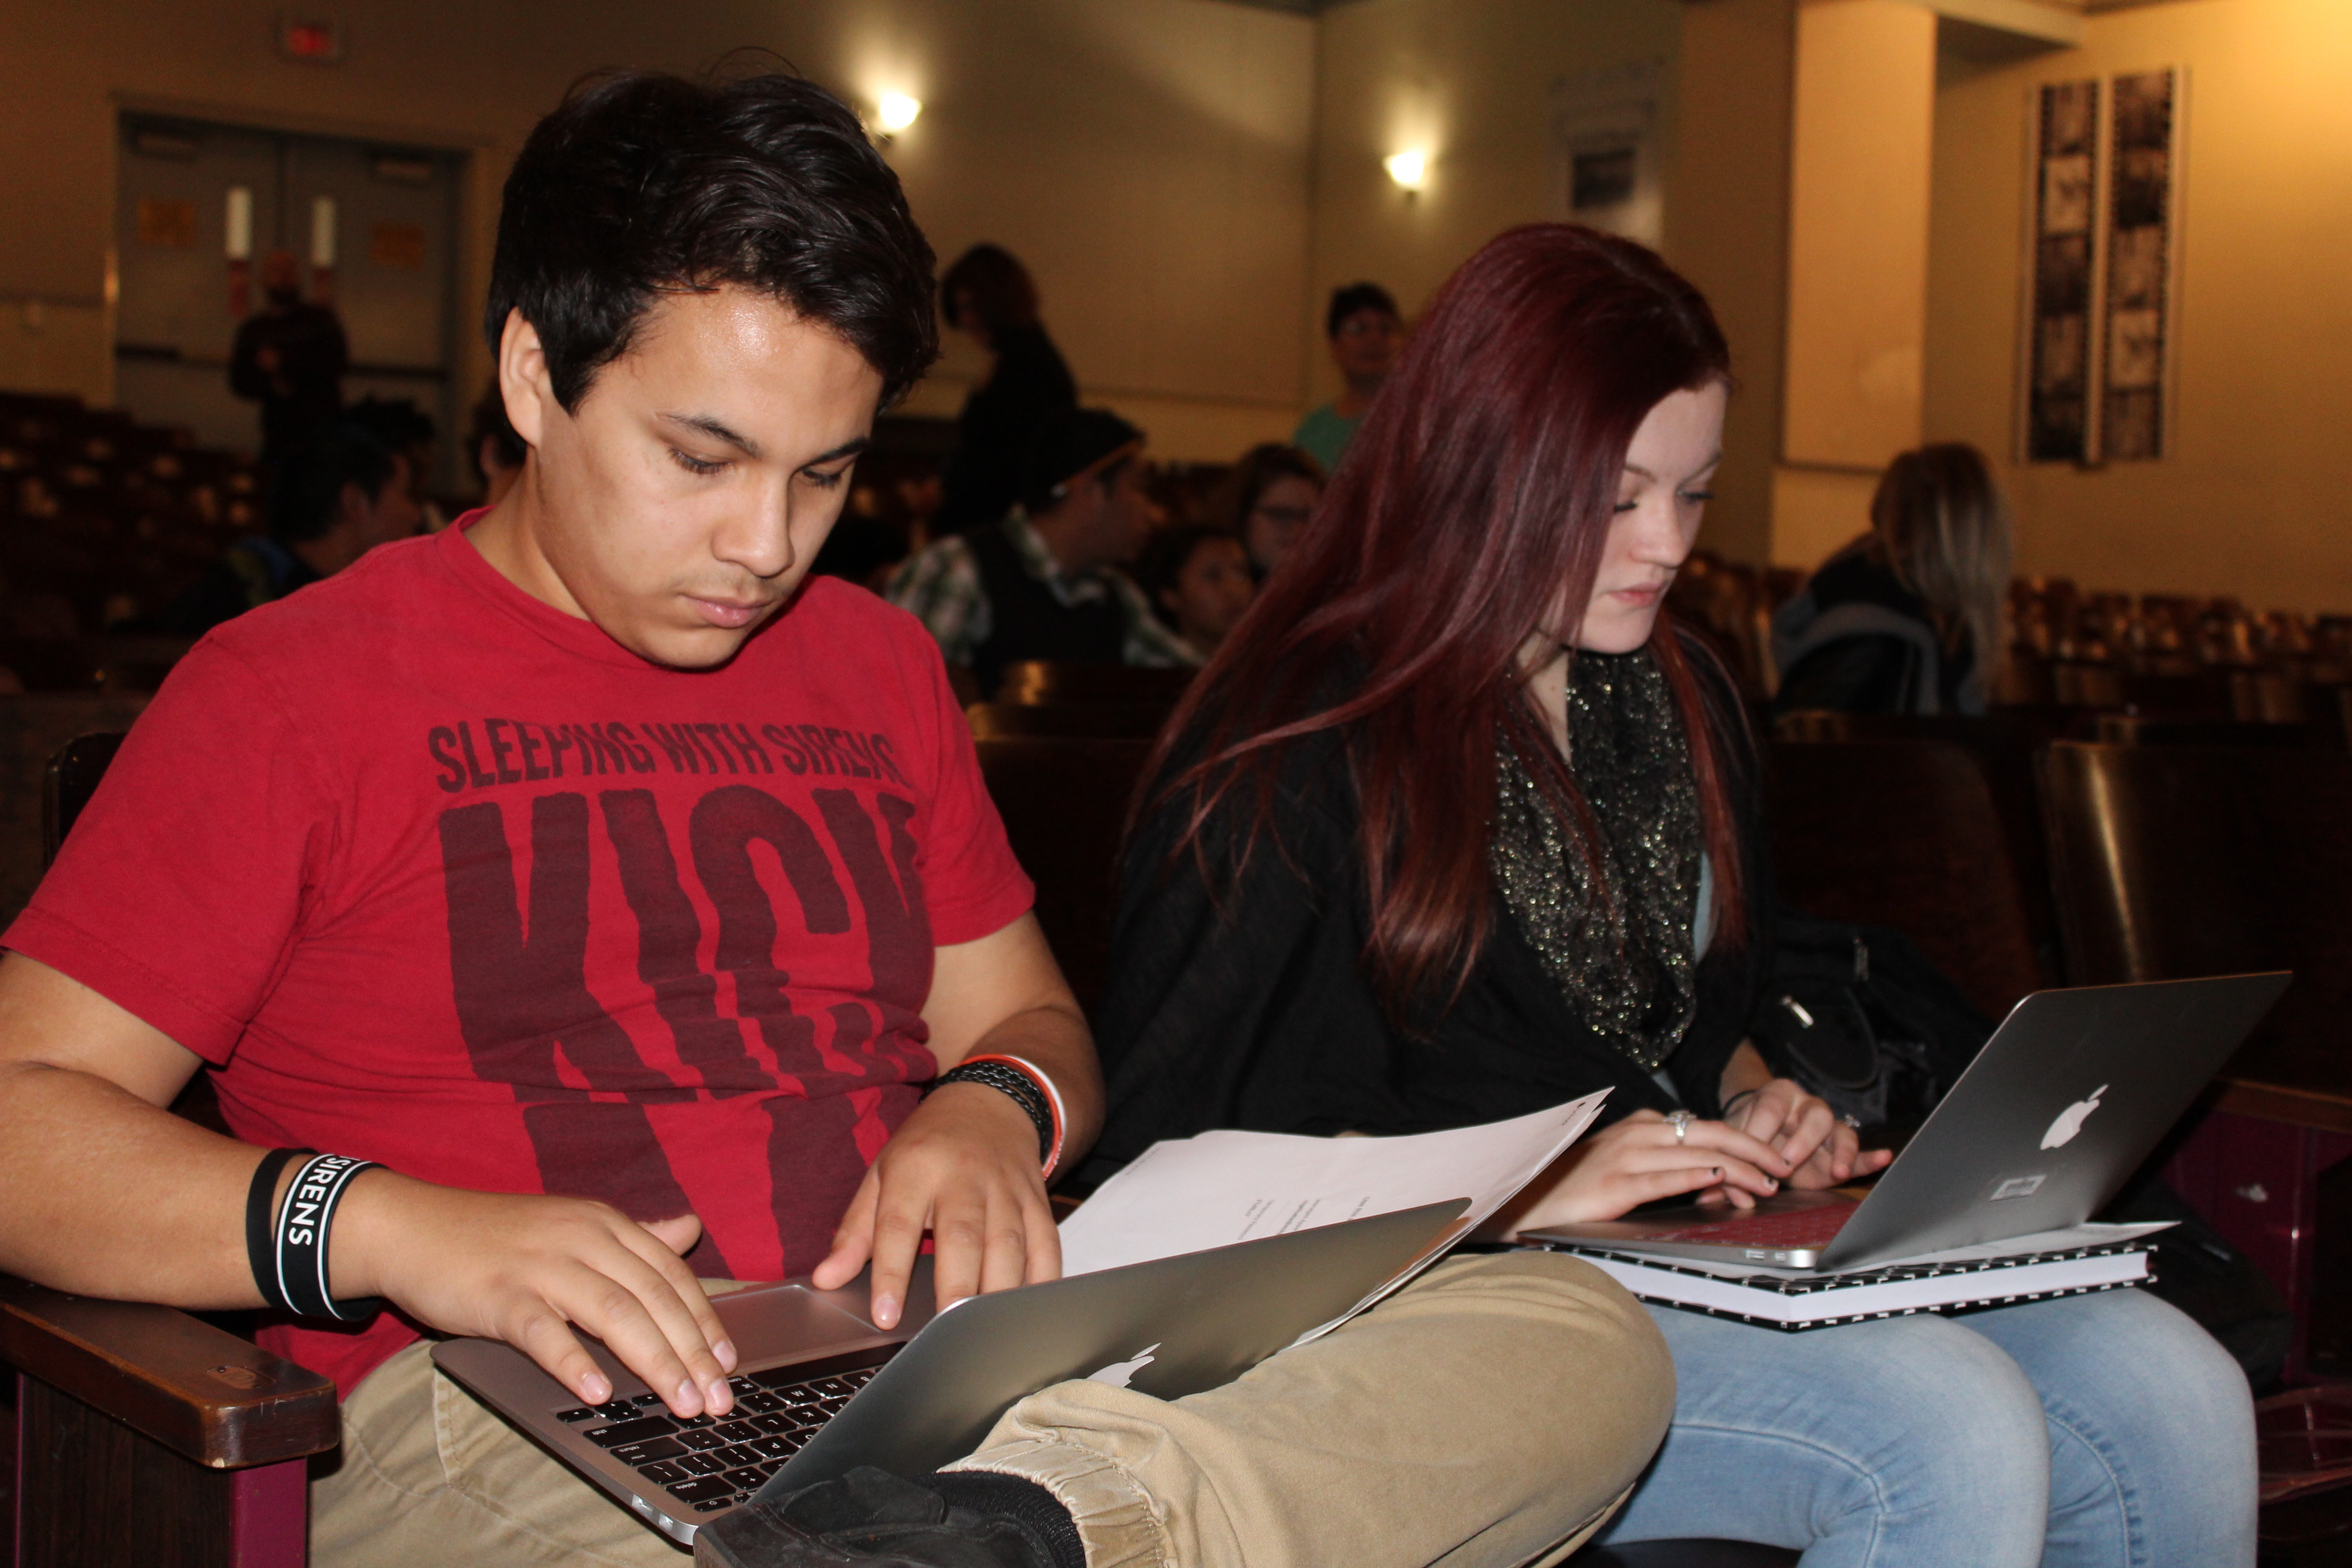 Holmes Students Receive MacBooks